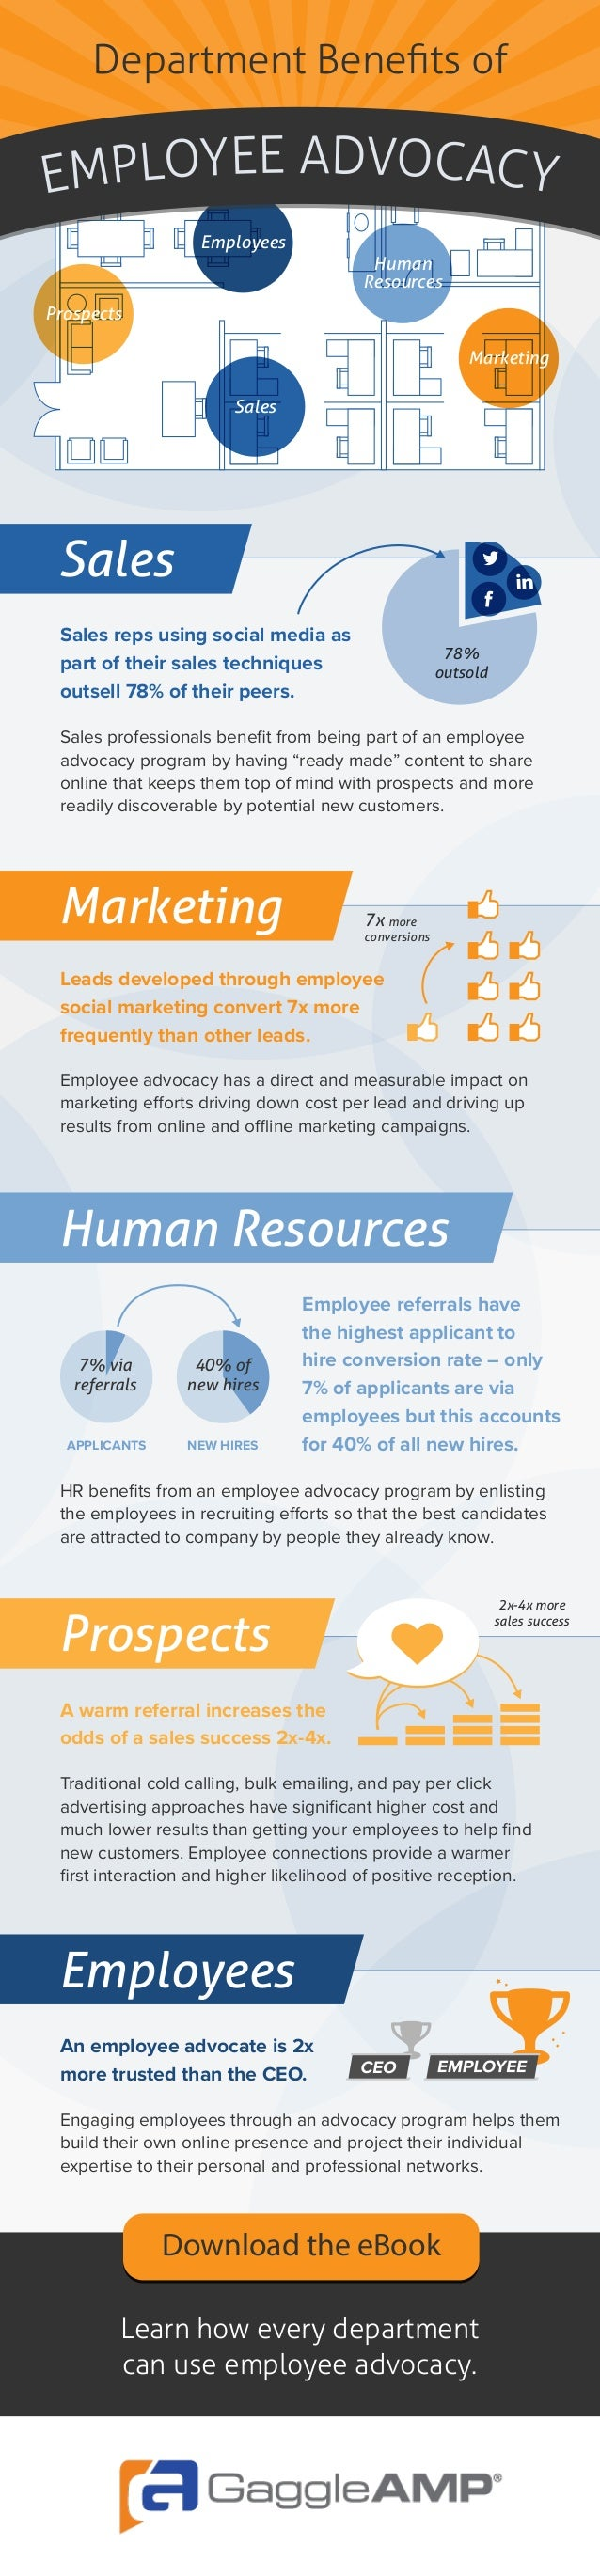 Department Benefits of Employee advocacy has a direct and measurable impact on marketing efforts driving down cost per lead...